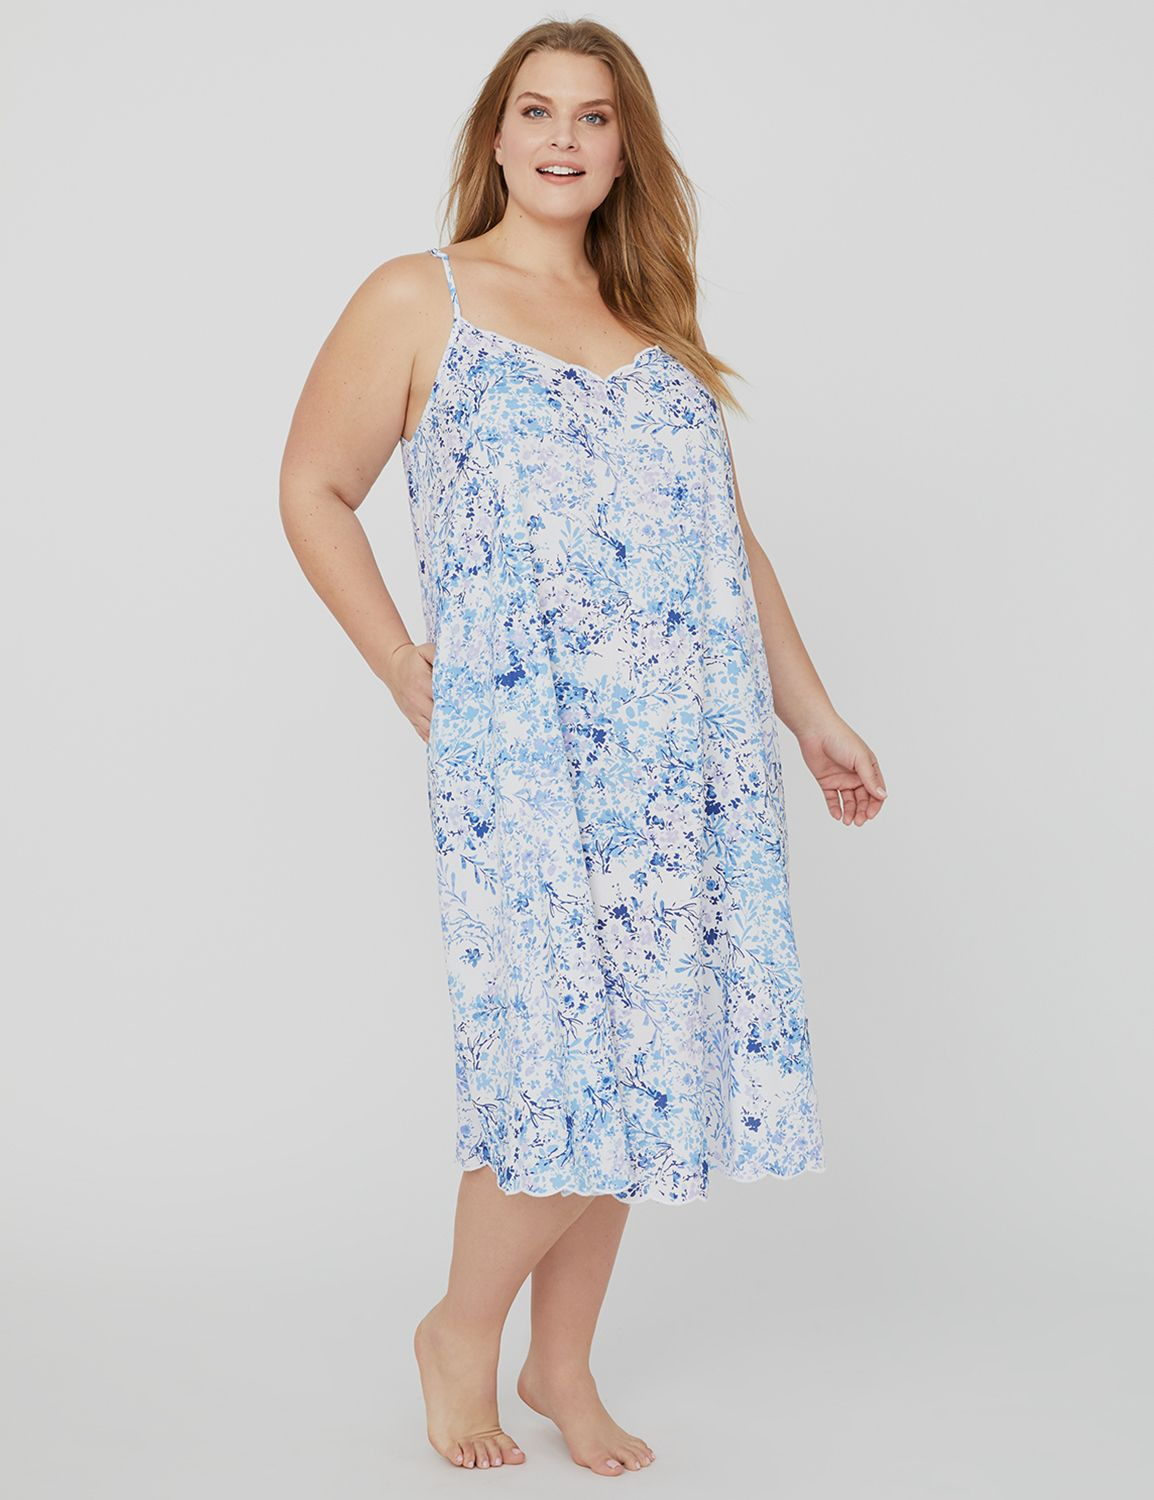 Scalloped-Edge Sleep Gown 1088493- Printed Challis Woven Midi MP-300096241